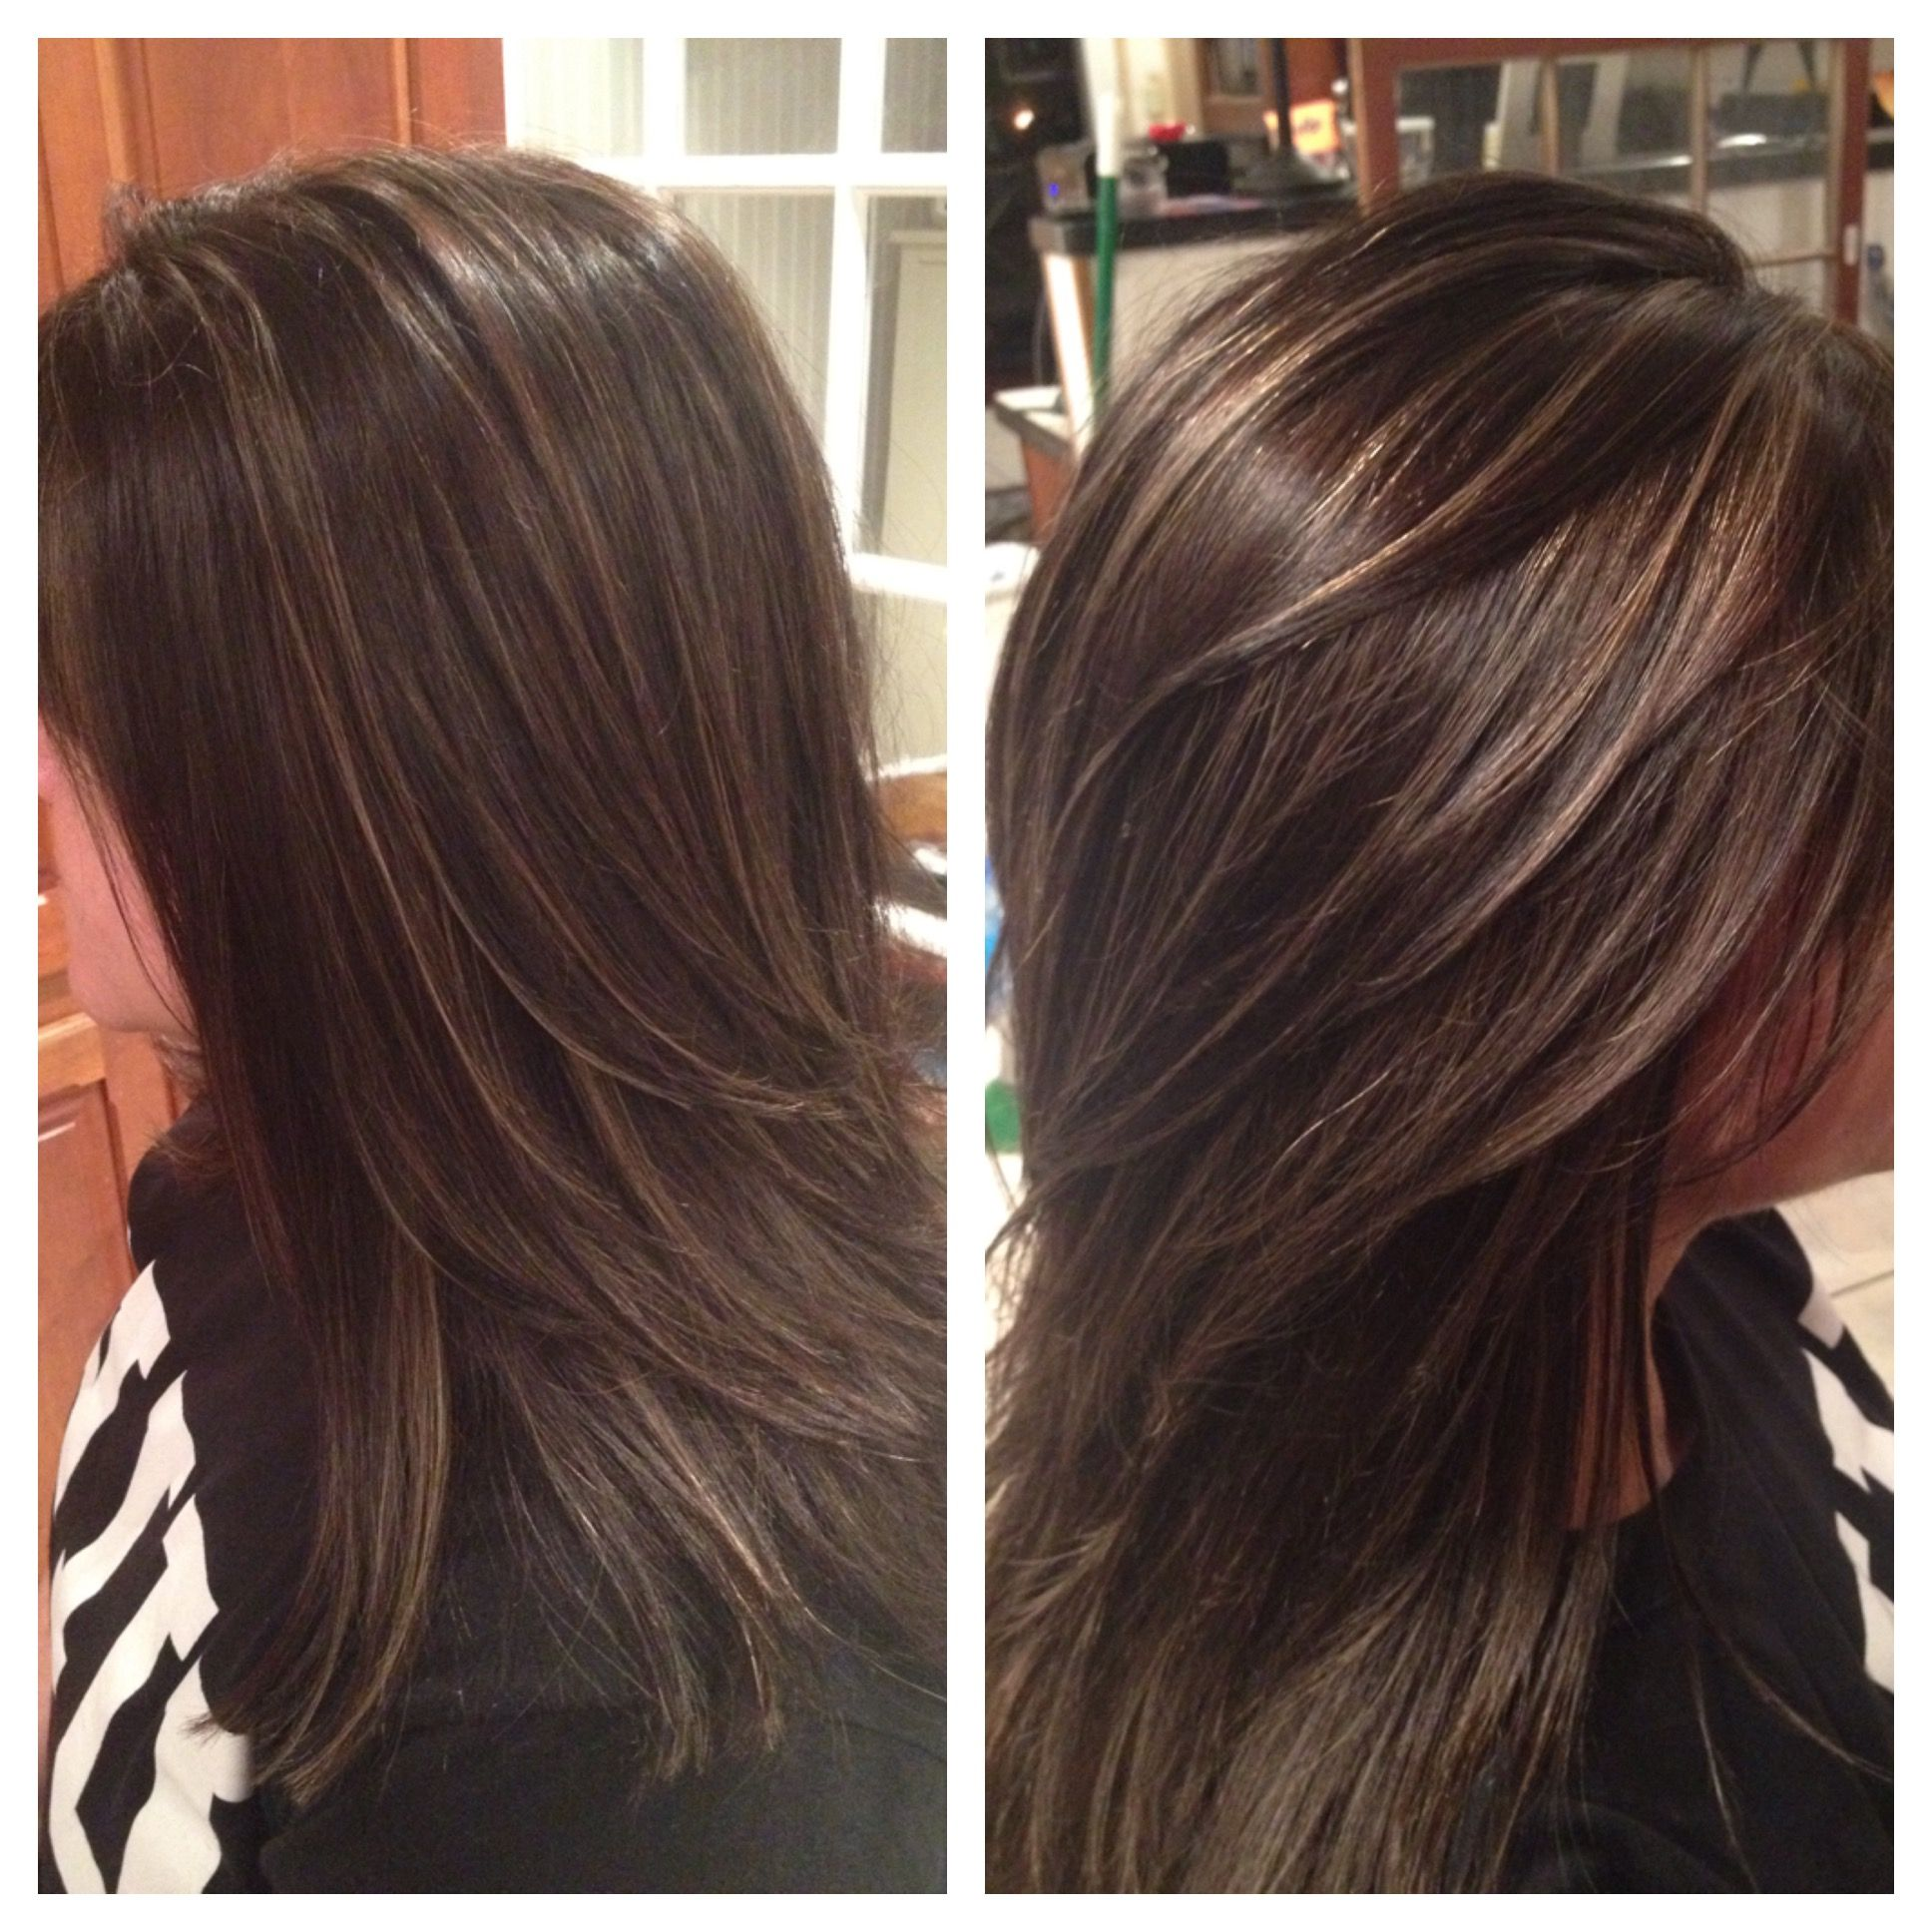 Deep brown with caramel baby lights Hair by Amanda